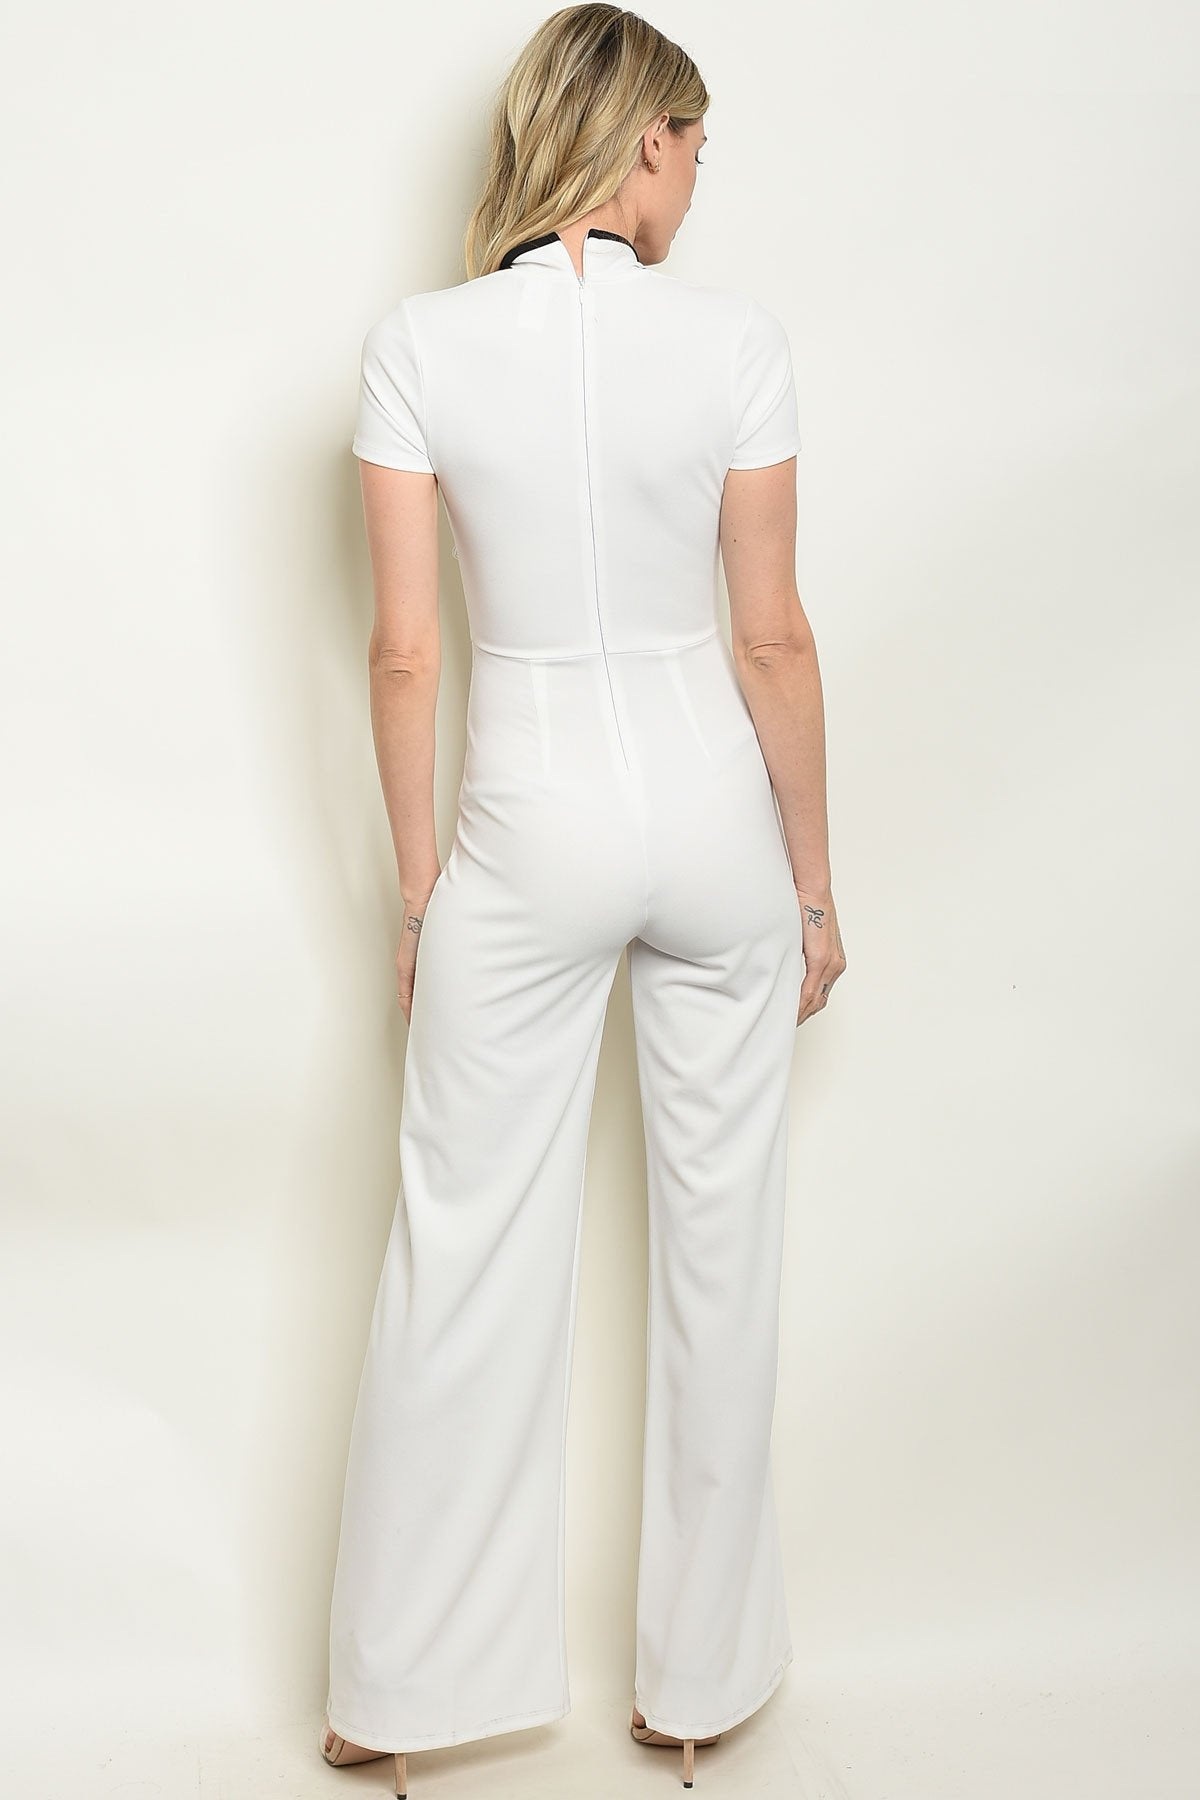 Ivory Jumpsuit - Manifest Best Boutique